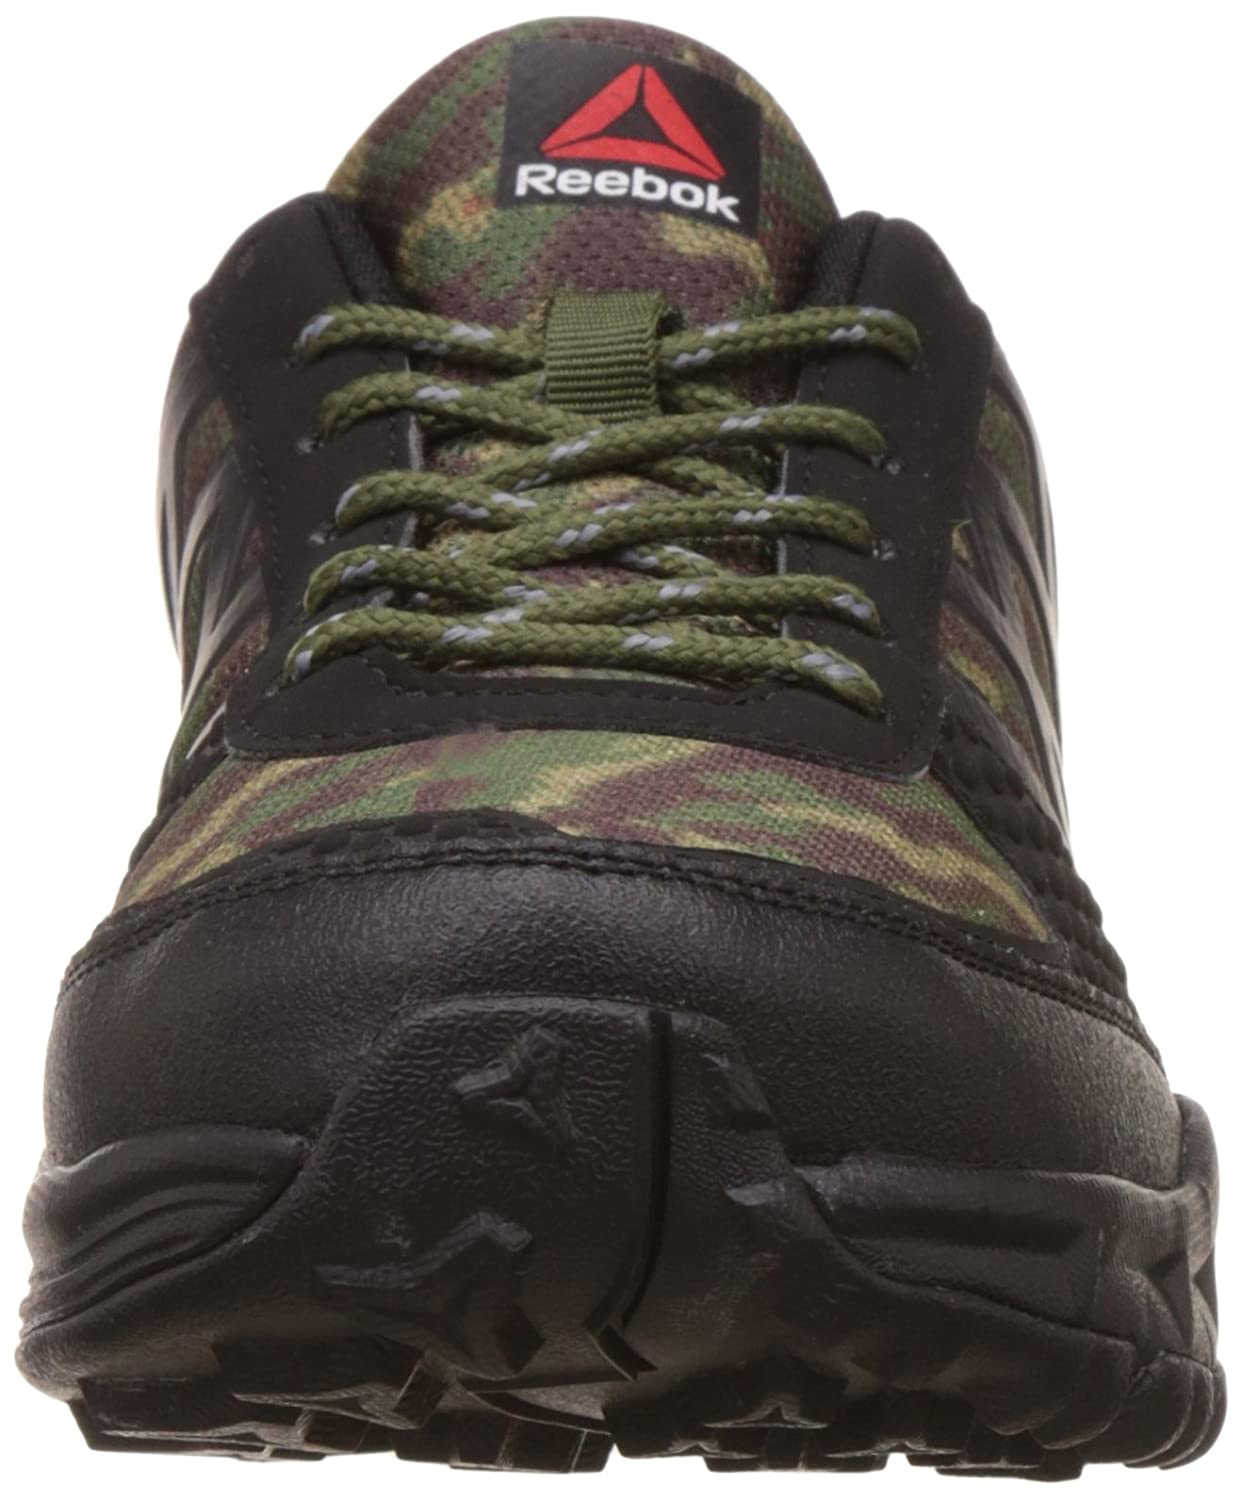 Reebok Men s Camo Trek 2.0 Nordic Walking Shoes  Amazon.in  Shoes   Handbags 82d325e2f